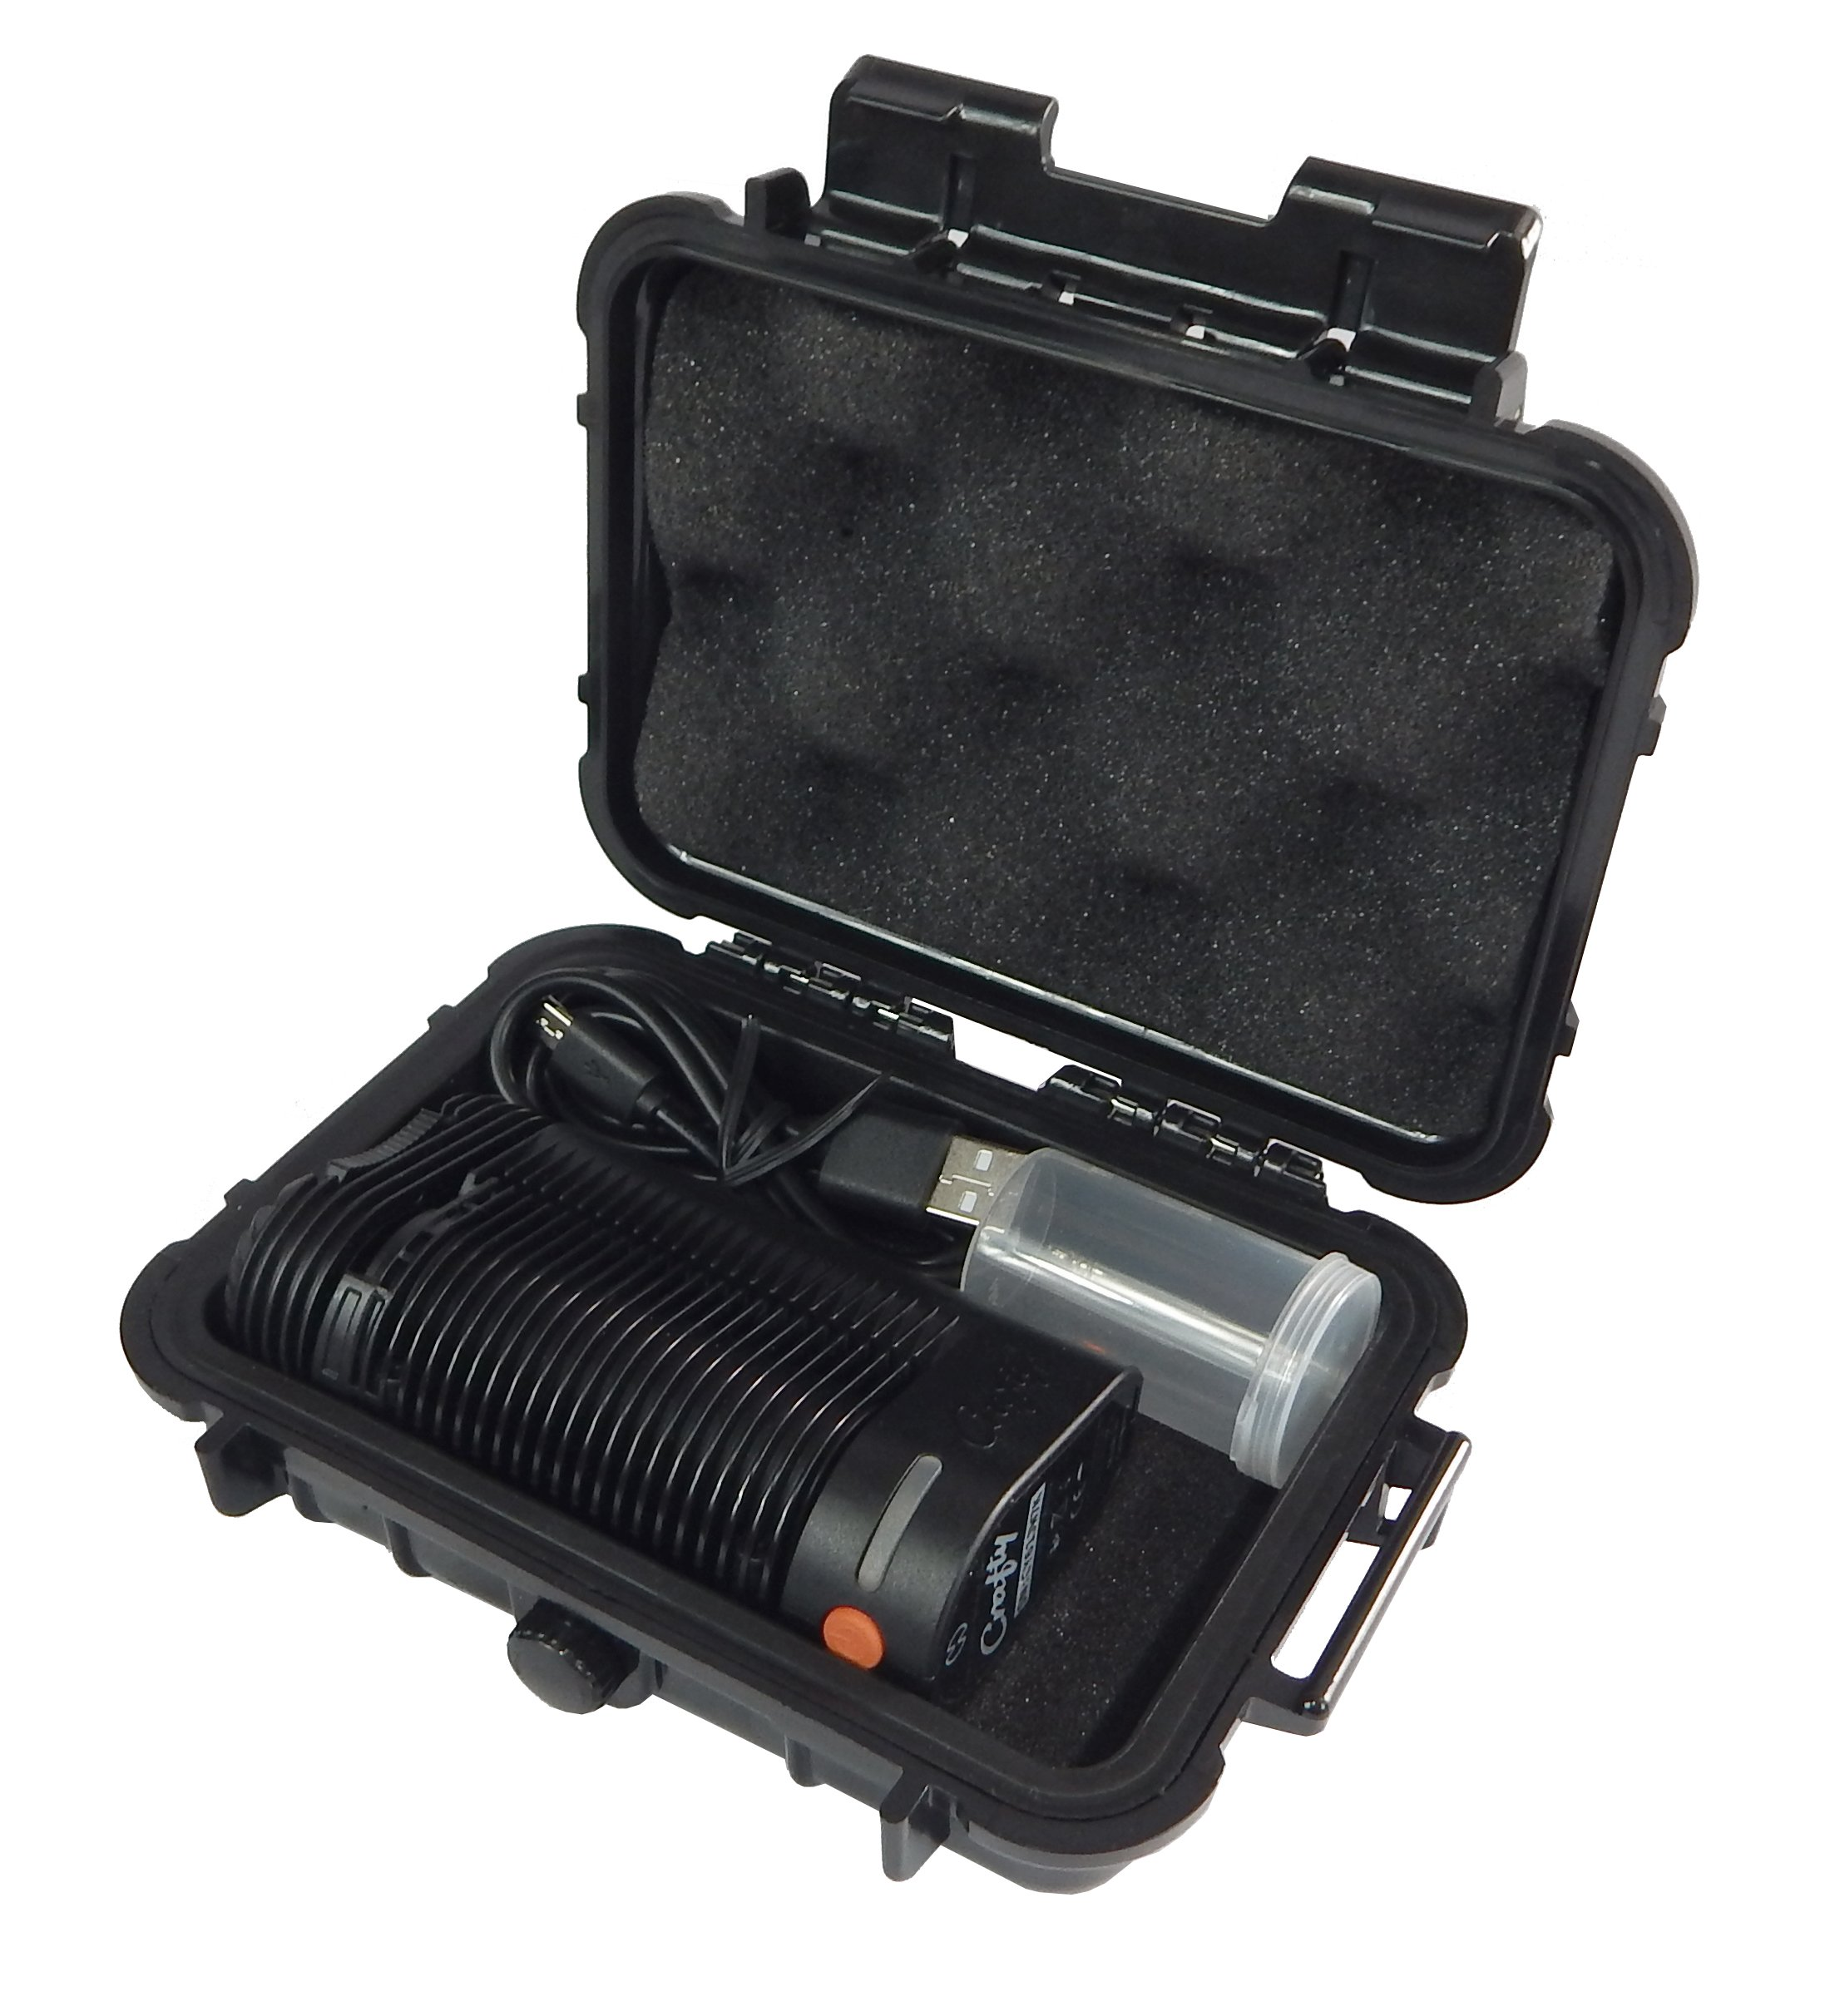 CLOUD/TEN Storz and Bickel Crafty Handheld Carry Case - Smell Proof Odor Resistant Protective Airtight Carry Box Designed to Hold Storz and Bickel Crafty, Charge Cable and Included Herb Canister